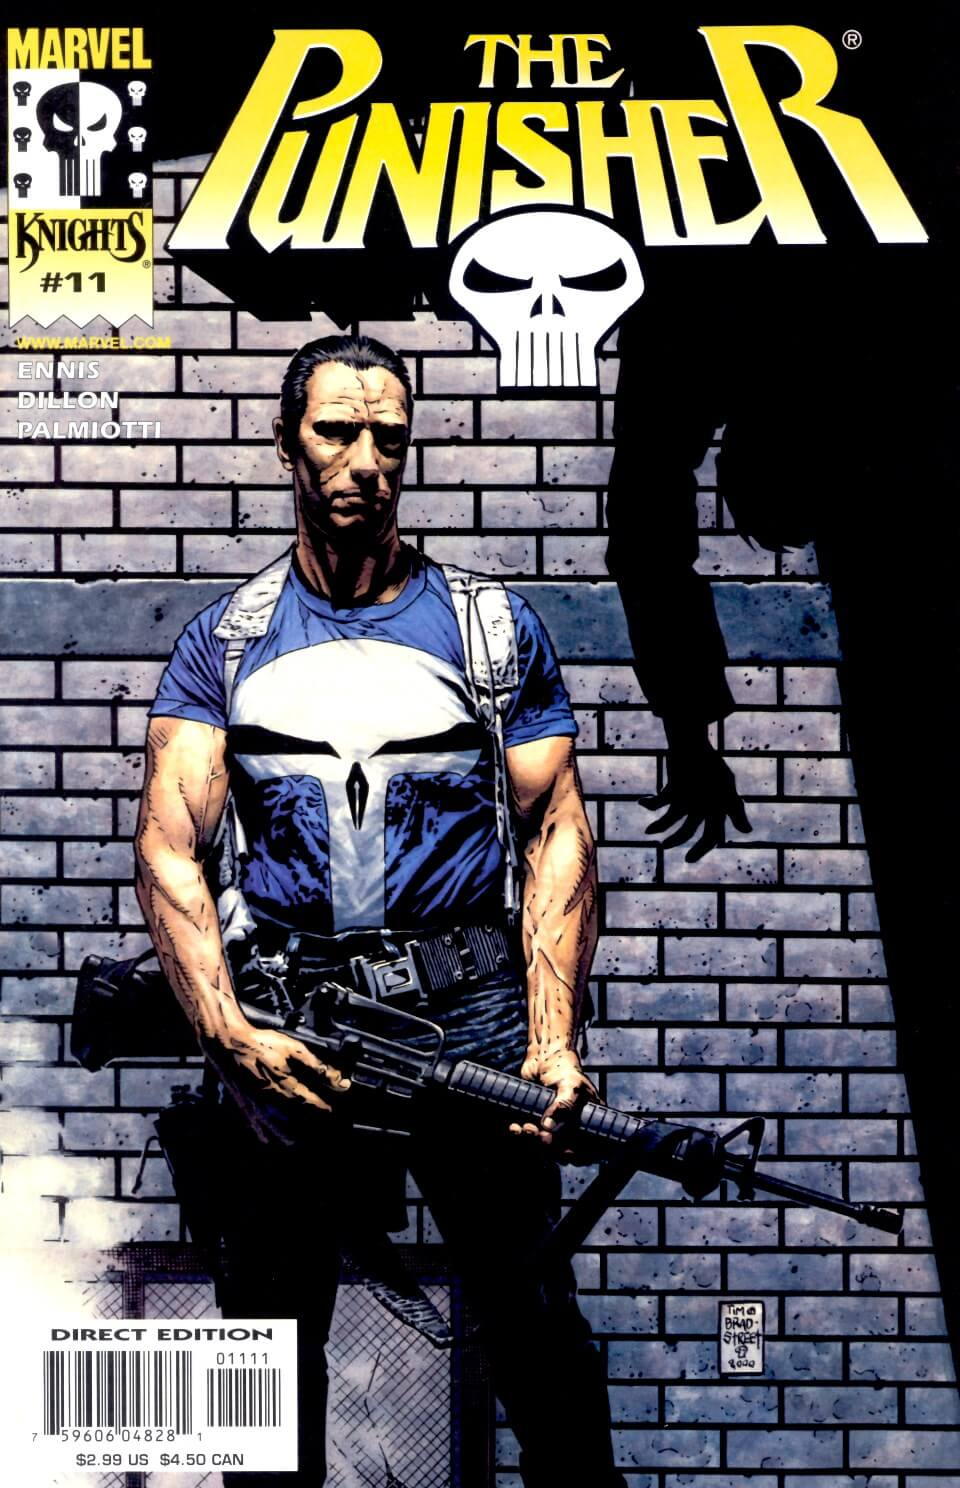 The Punisher Vol 4 #11